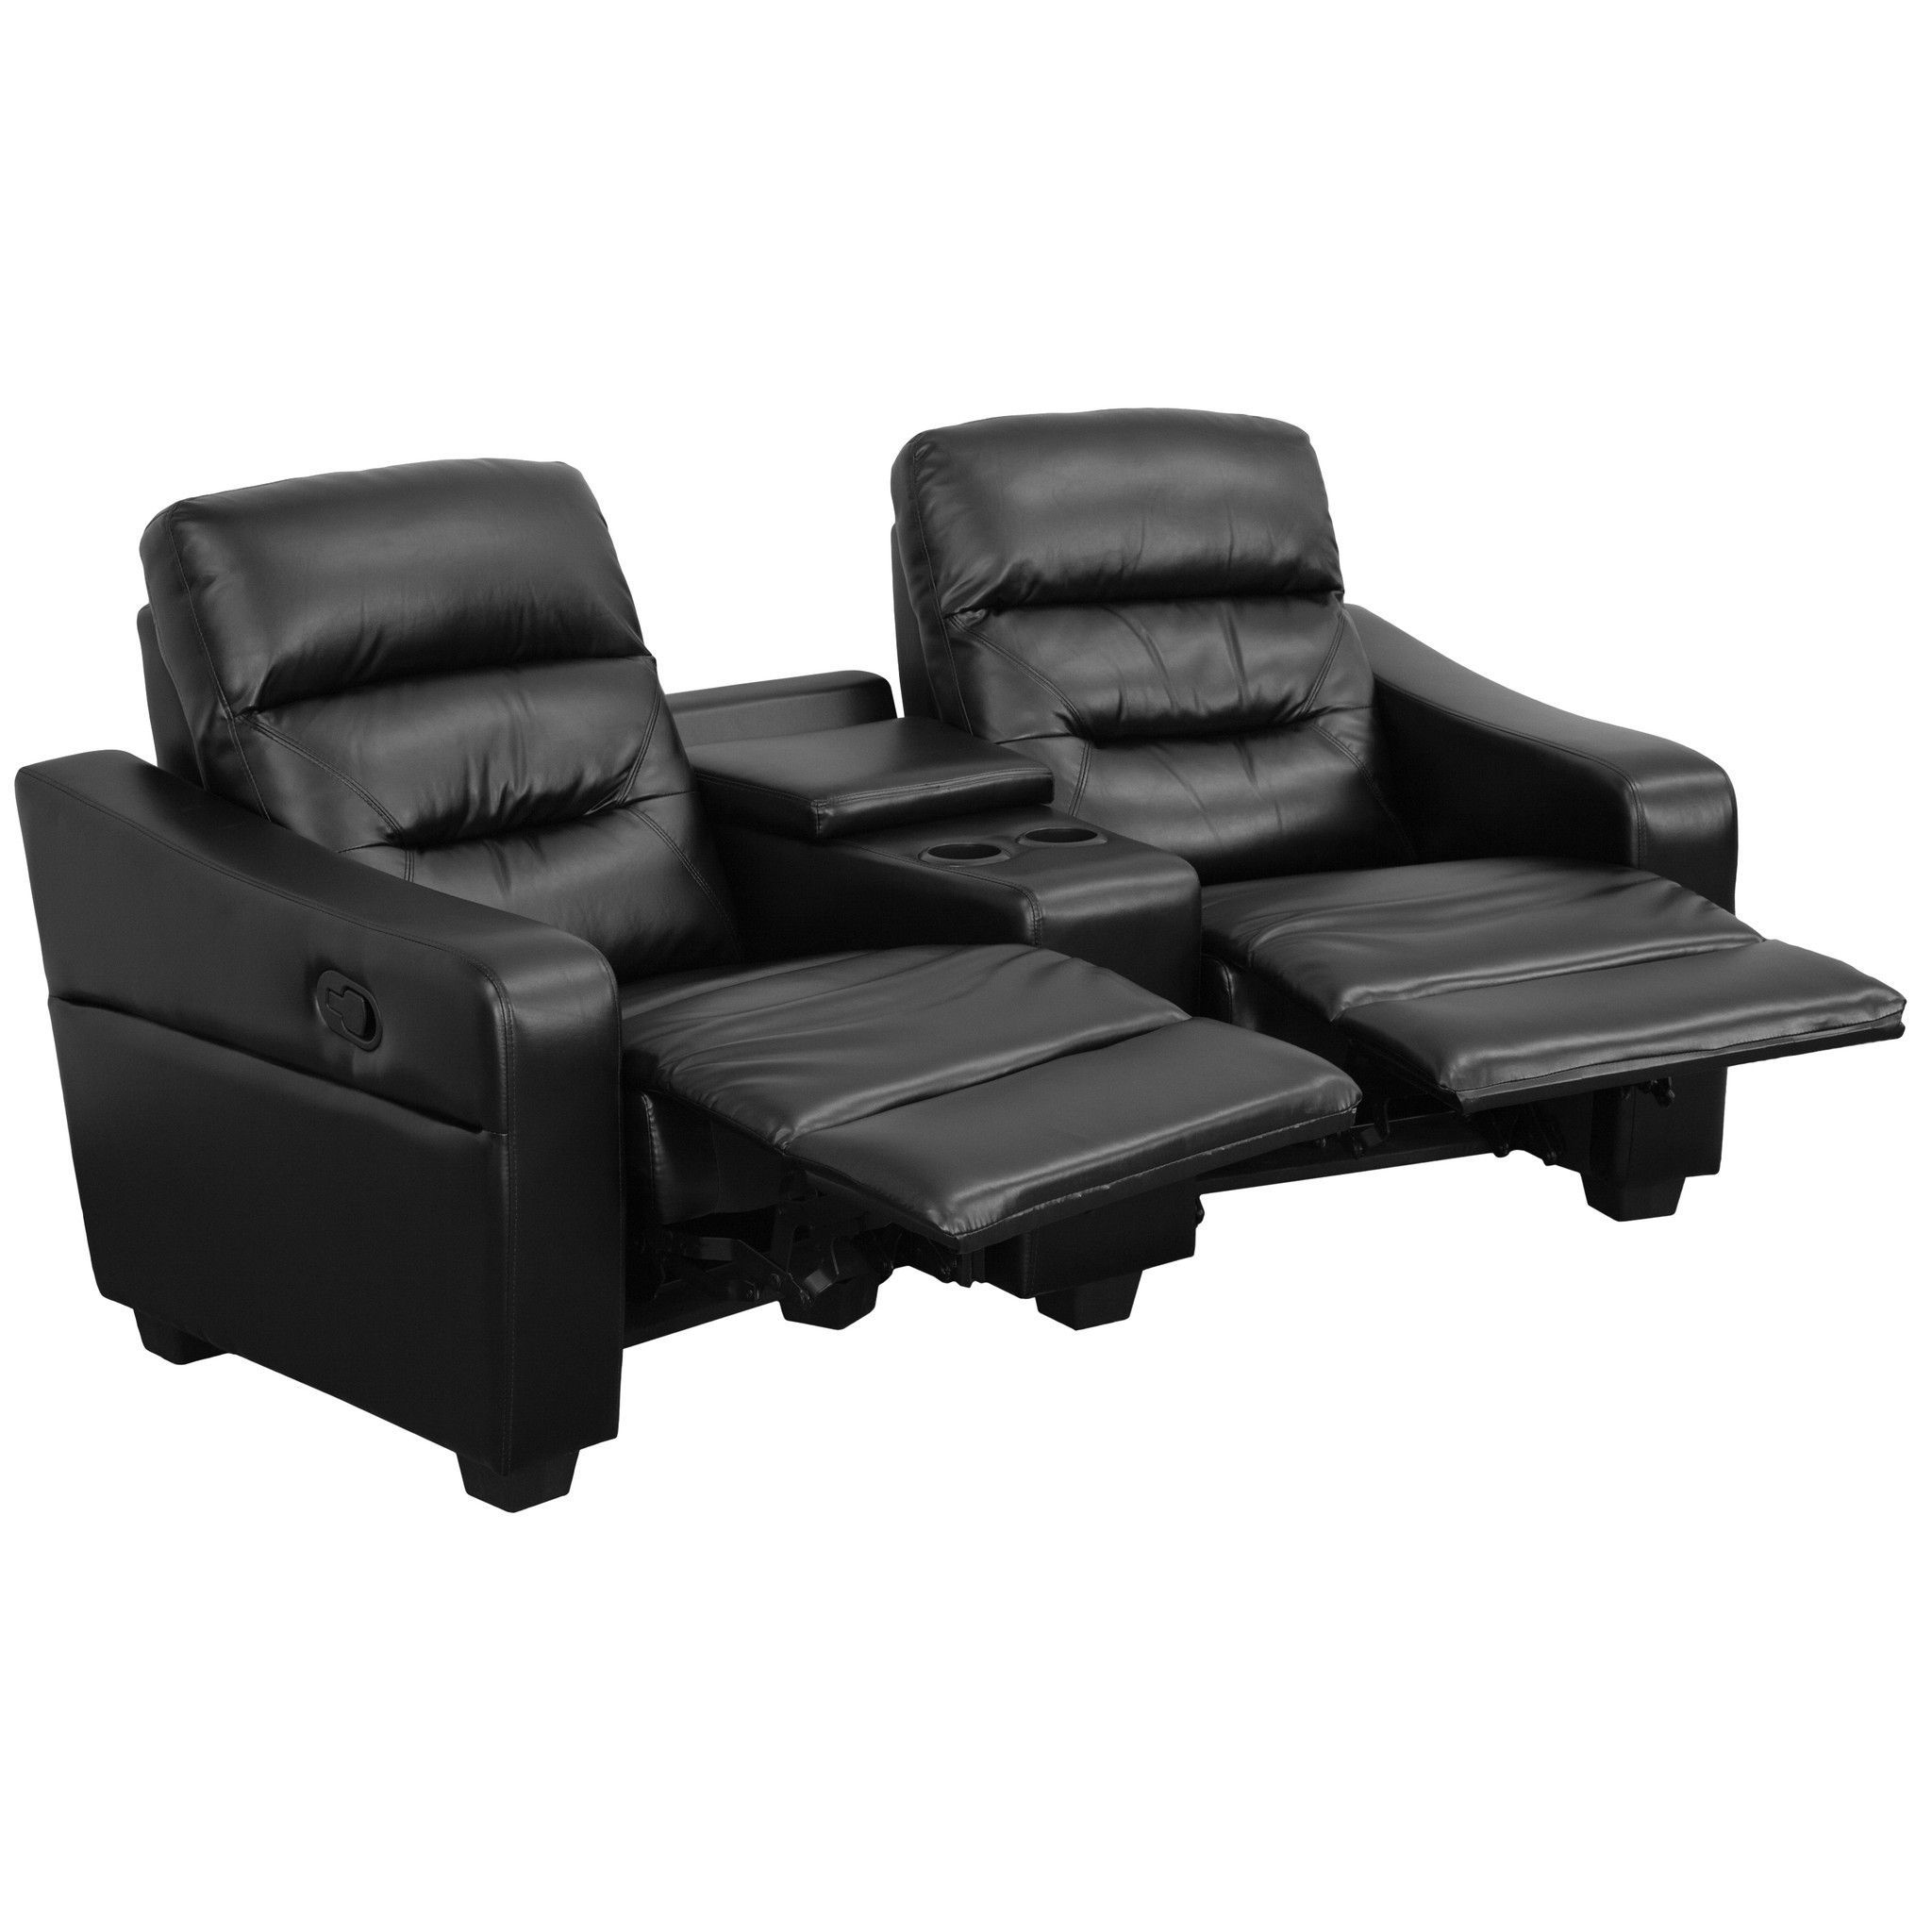 Flash Furniture Futura Series 2-Seat Reclining Black Leather Theater Seating Unit with Cup Holders  sc 1 st  Pinterest & Flash Furniture Futura Series 2-Seat Reclining Black Leather ... islam-shia.org